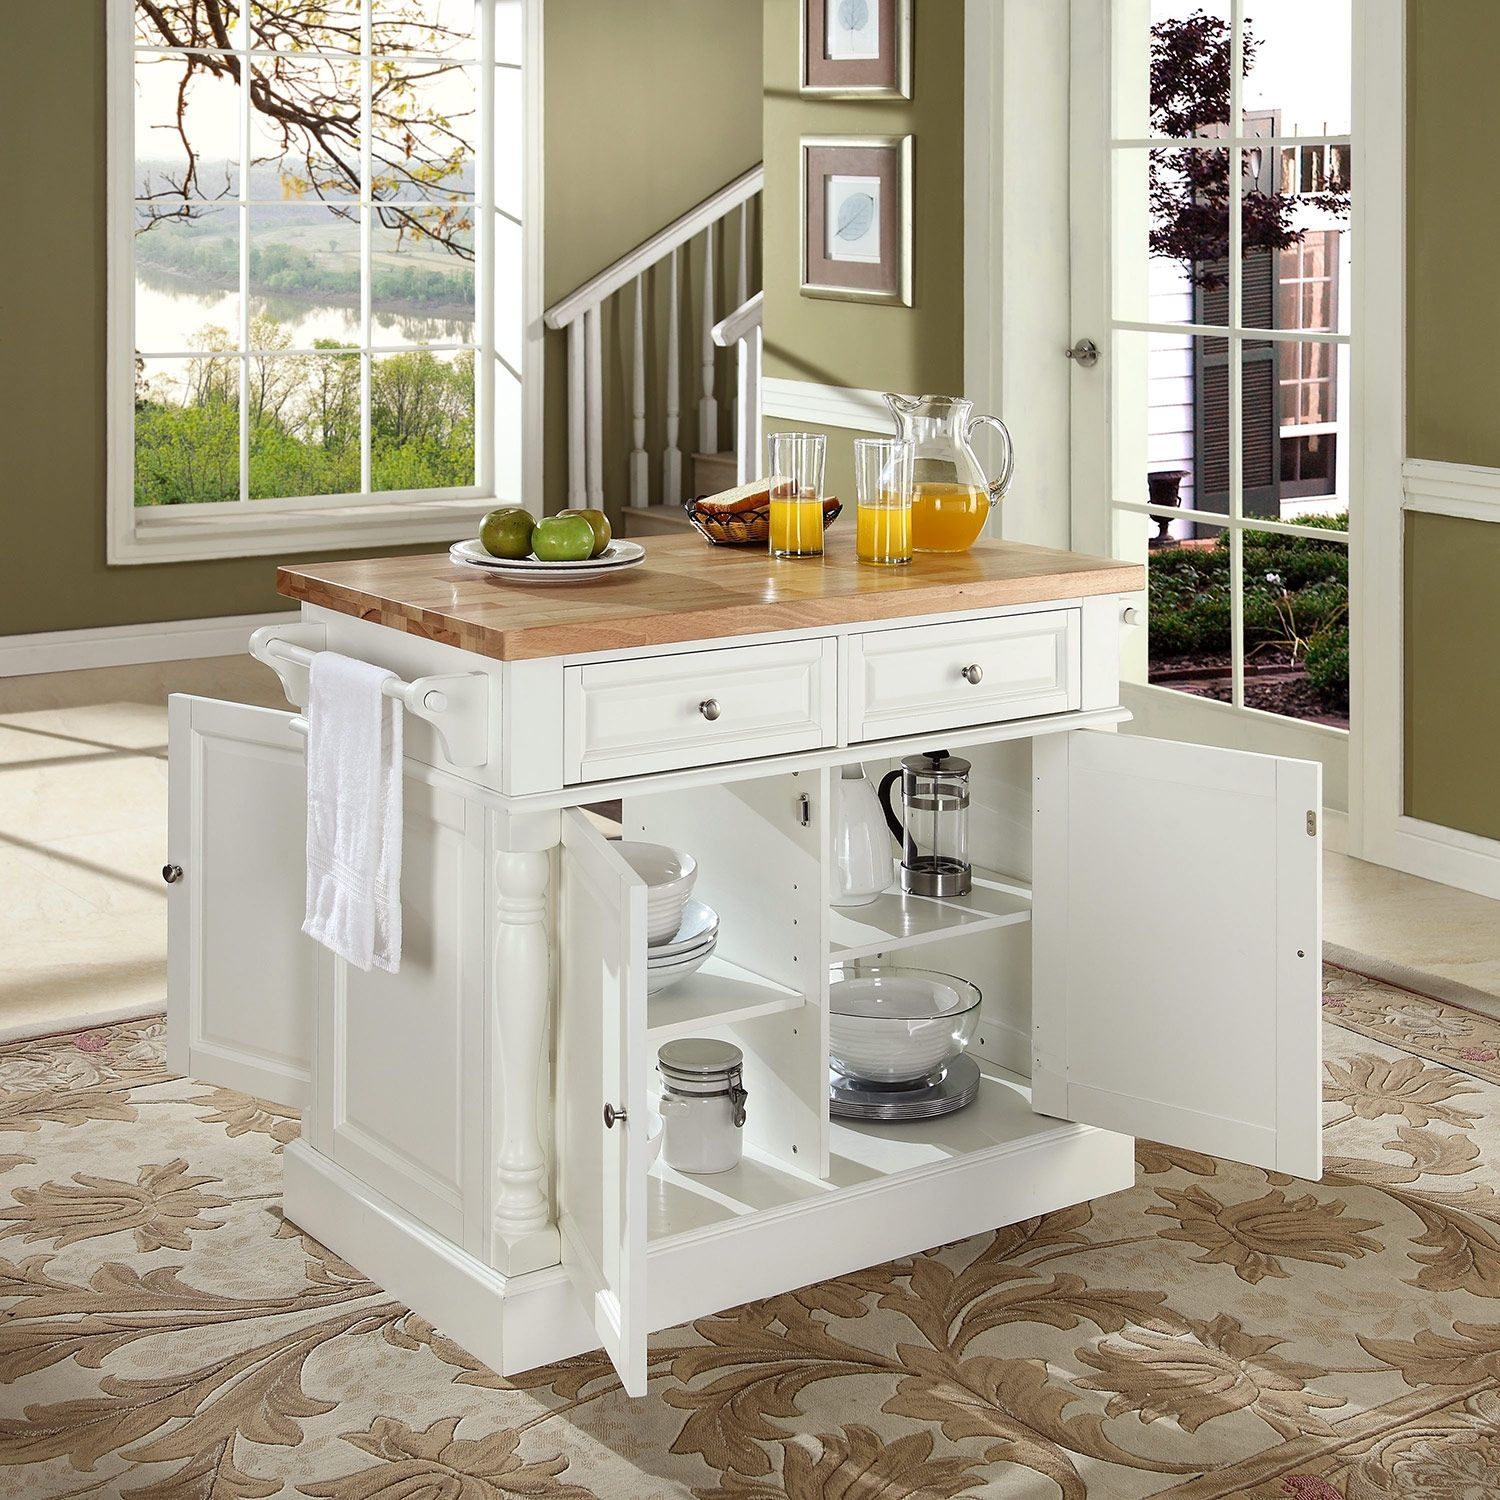 Griffin Kitchen Island - White | City furniture, Kitchens and Barbie ...